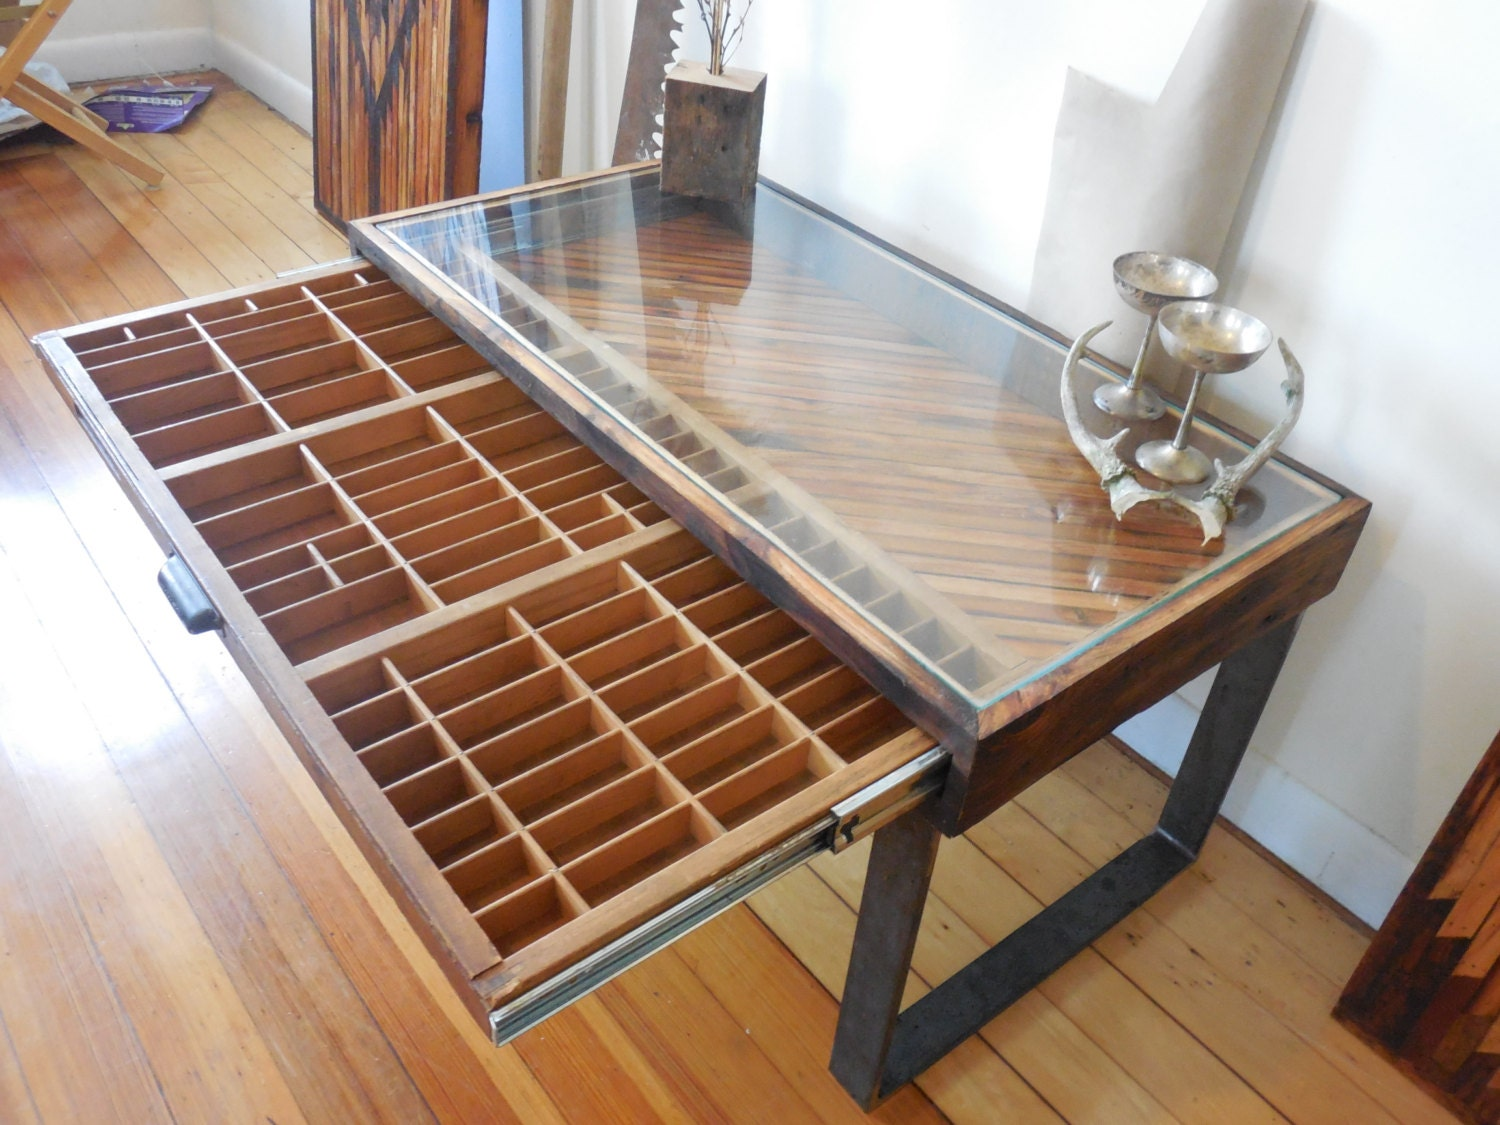 Reclaimed wood coffee table printer drawer by uniqueindustry for How to make a reclaimed wood coffee table